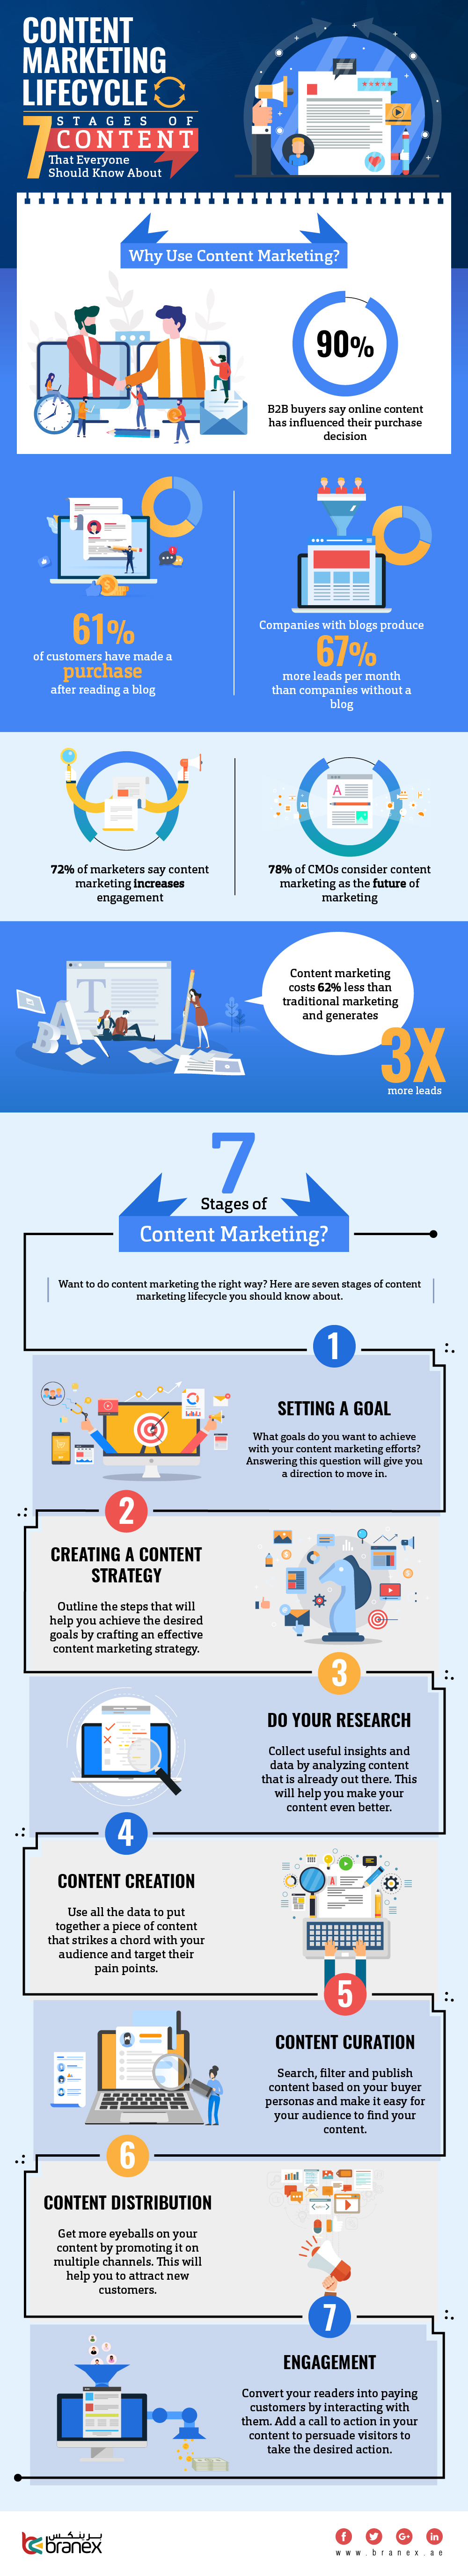 Content marketing lifecycle - Branex Dubai